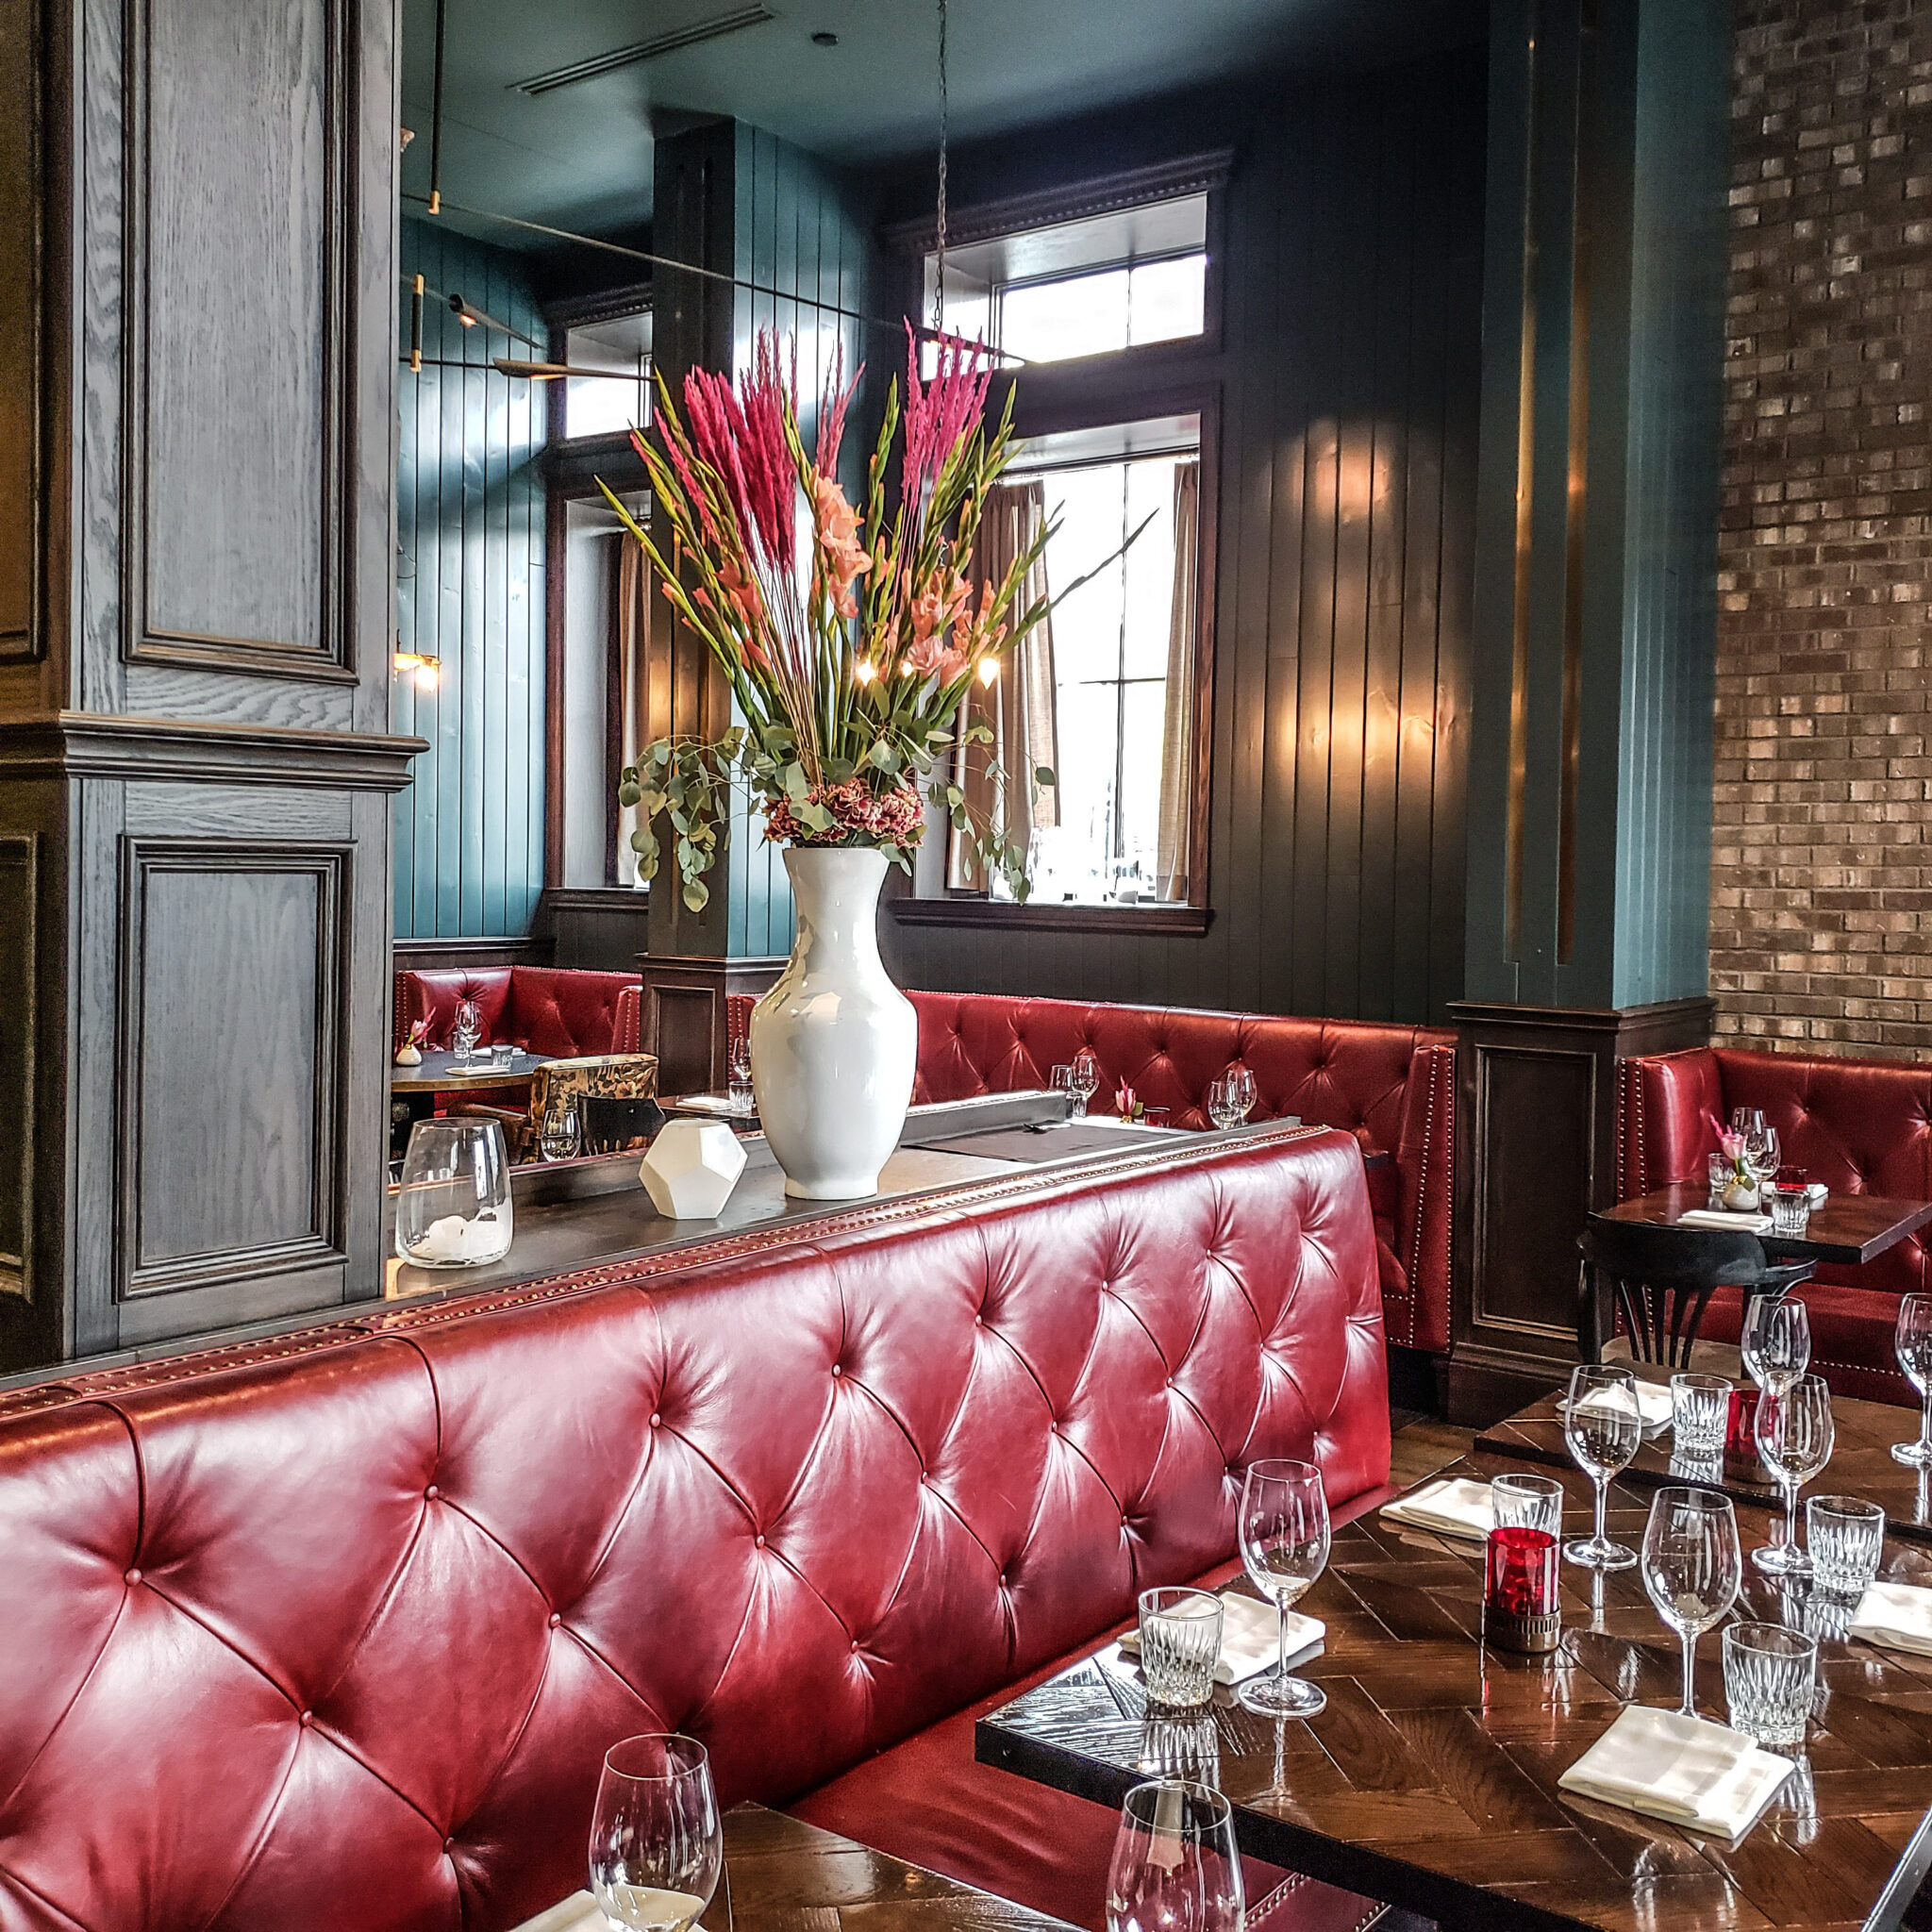 The Broadview Hotel - Broadview Hotel - Queen East - Toronto East - Toronto Life - Boutique Hotel - The Civic - Decor